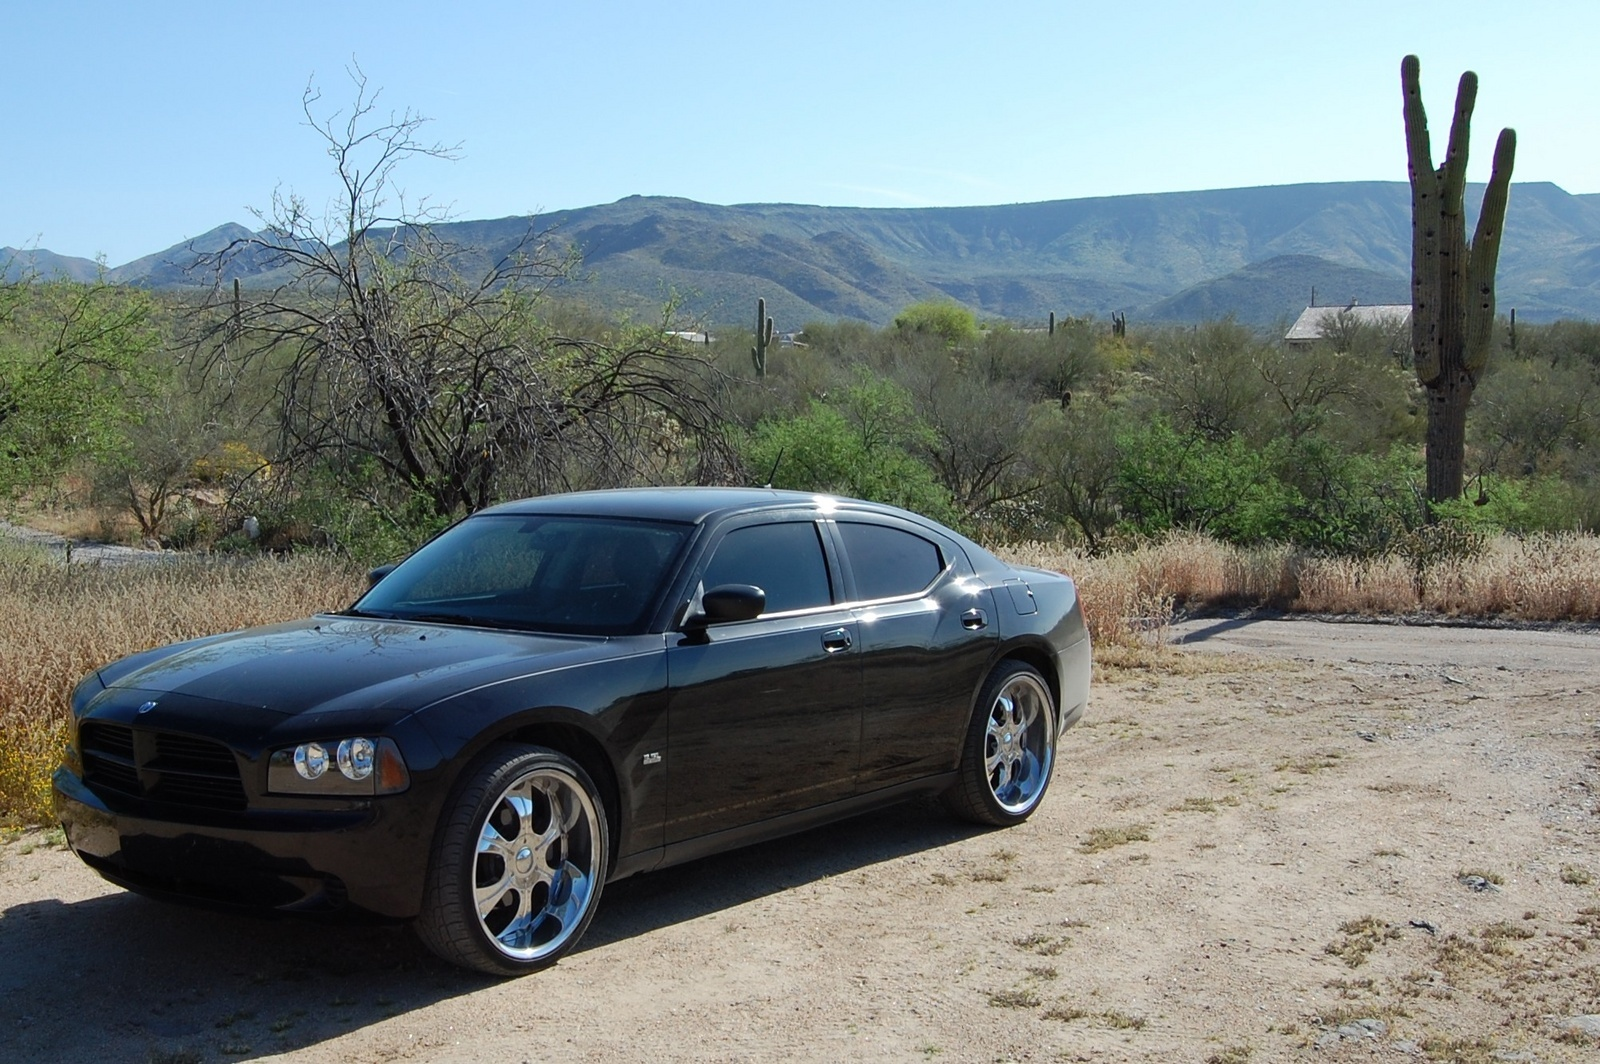 Dodge Charger Sxt Pic X